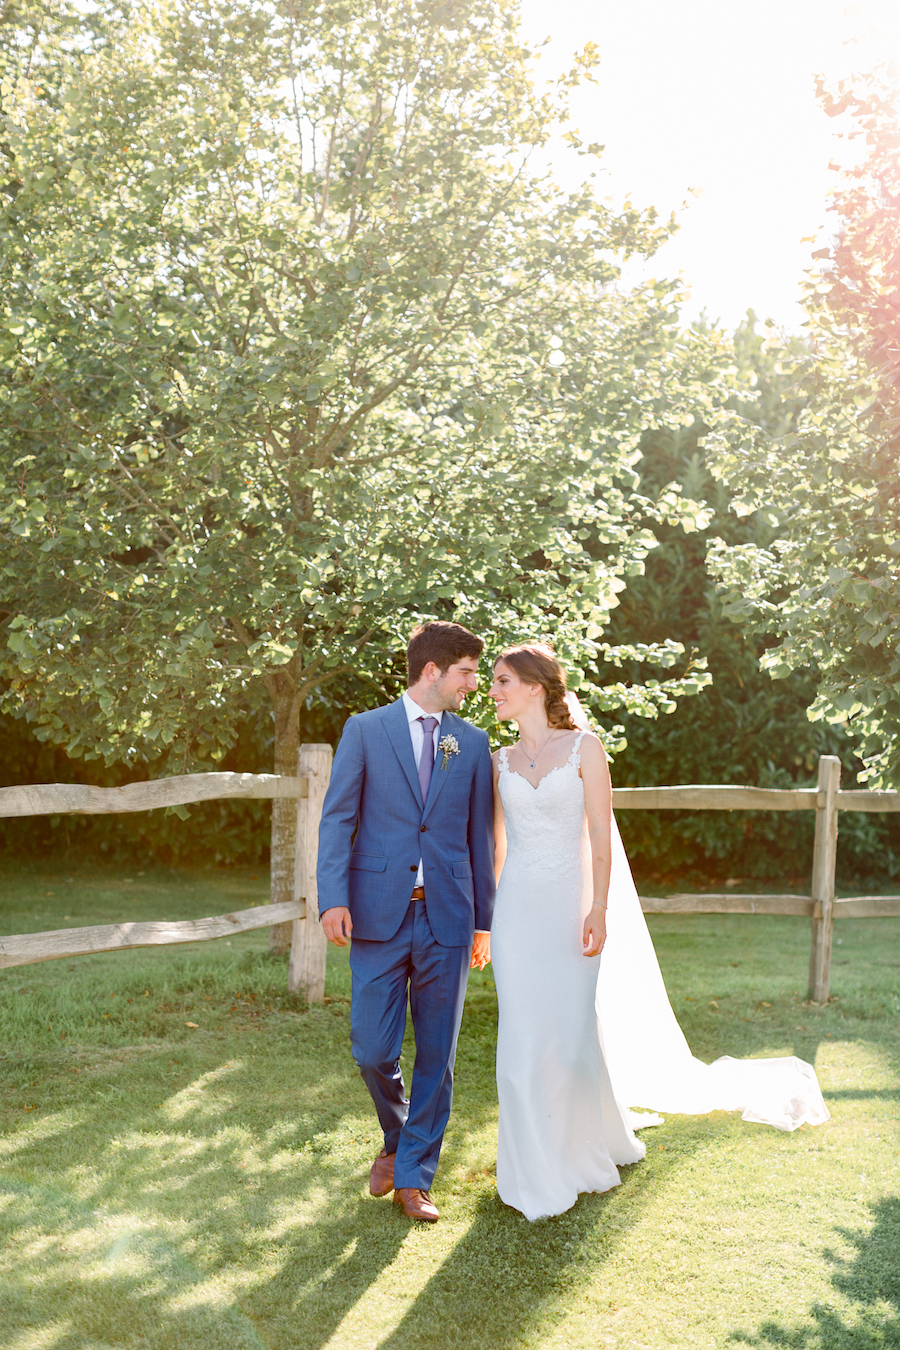 Louisa & Will's light and airy sunflower wedding at Lapstone Barn, with Hannah K Photography (36)